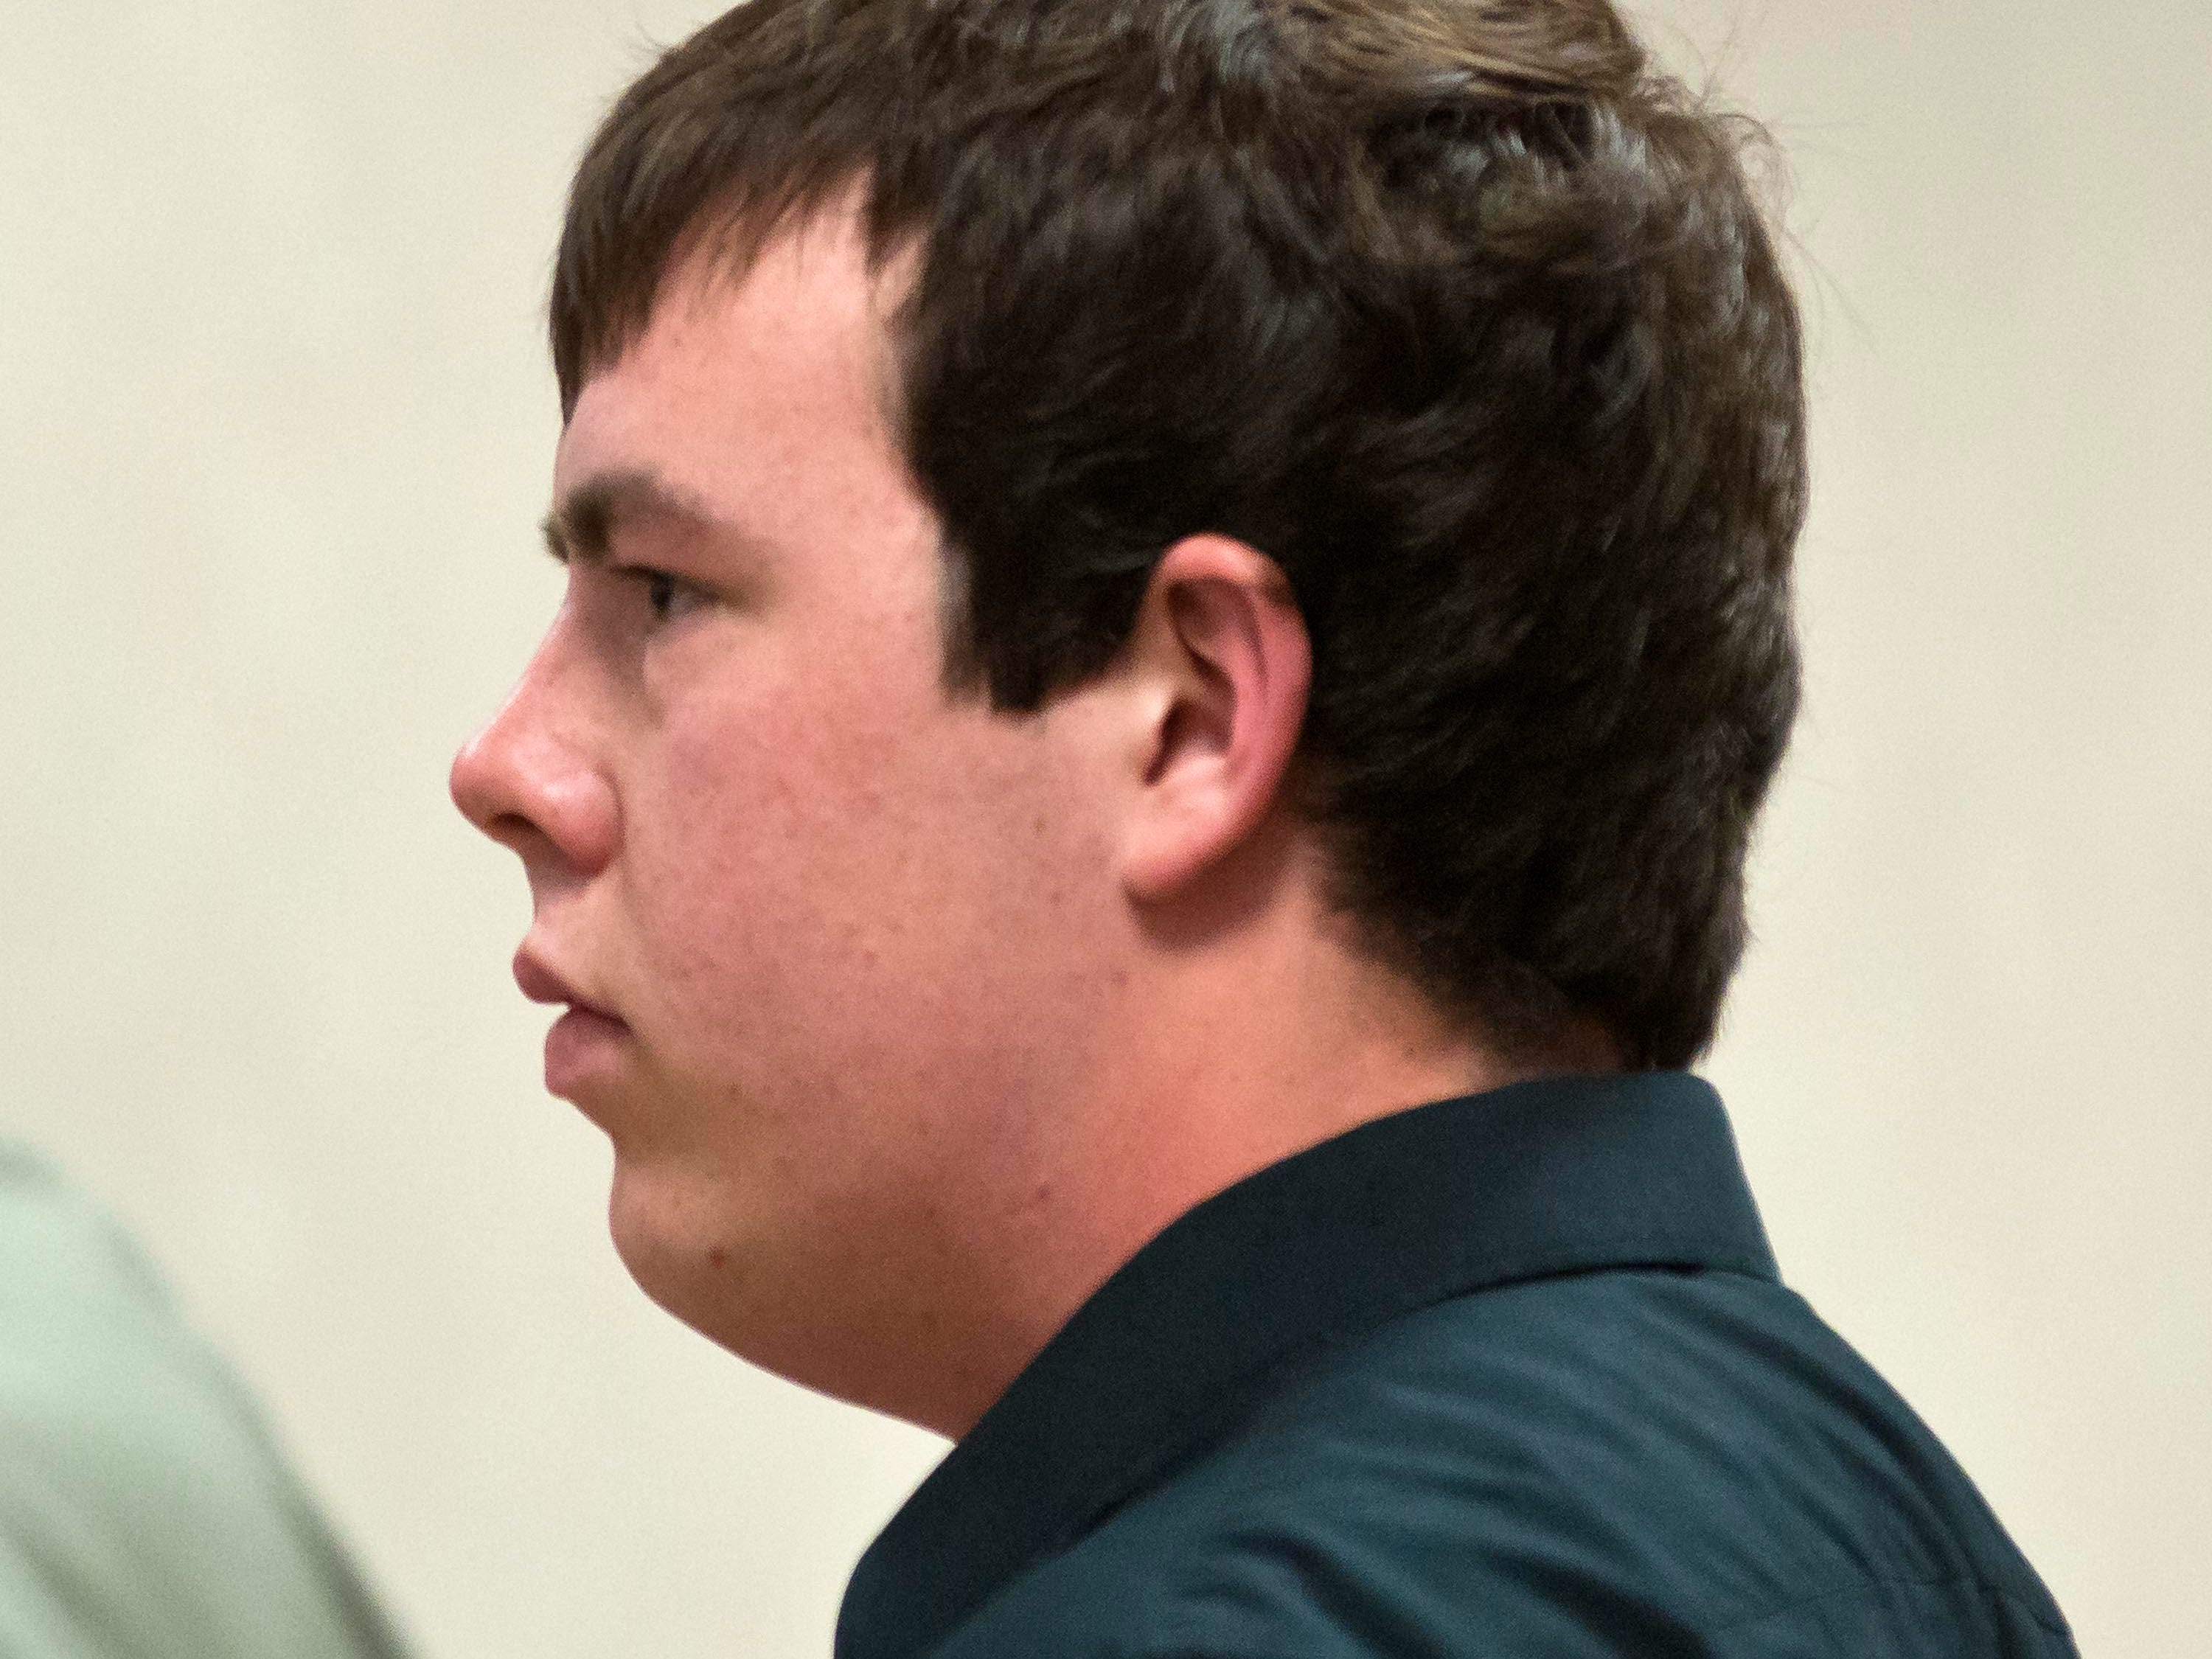 Brian Lasell, one of five former Milton High School football players accused of hazing, pleads not guilty to a charge of simple assault in Vermont Superior Court in Burlington on Tuesday. Also accused are Ryan Carlson, Brandon Belliveau, Colby Darling and William Jenkins. Carlson and Jenkins are out of state and did not appear at their arraignments.